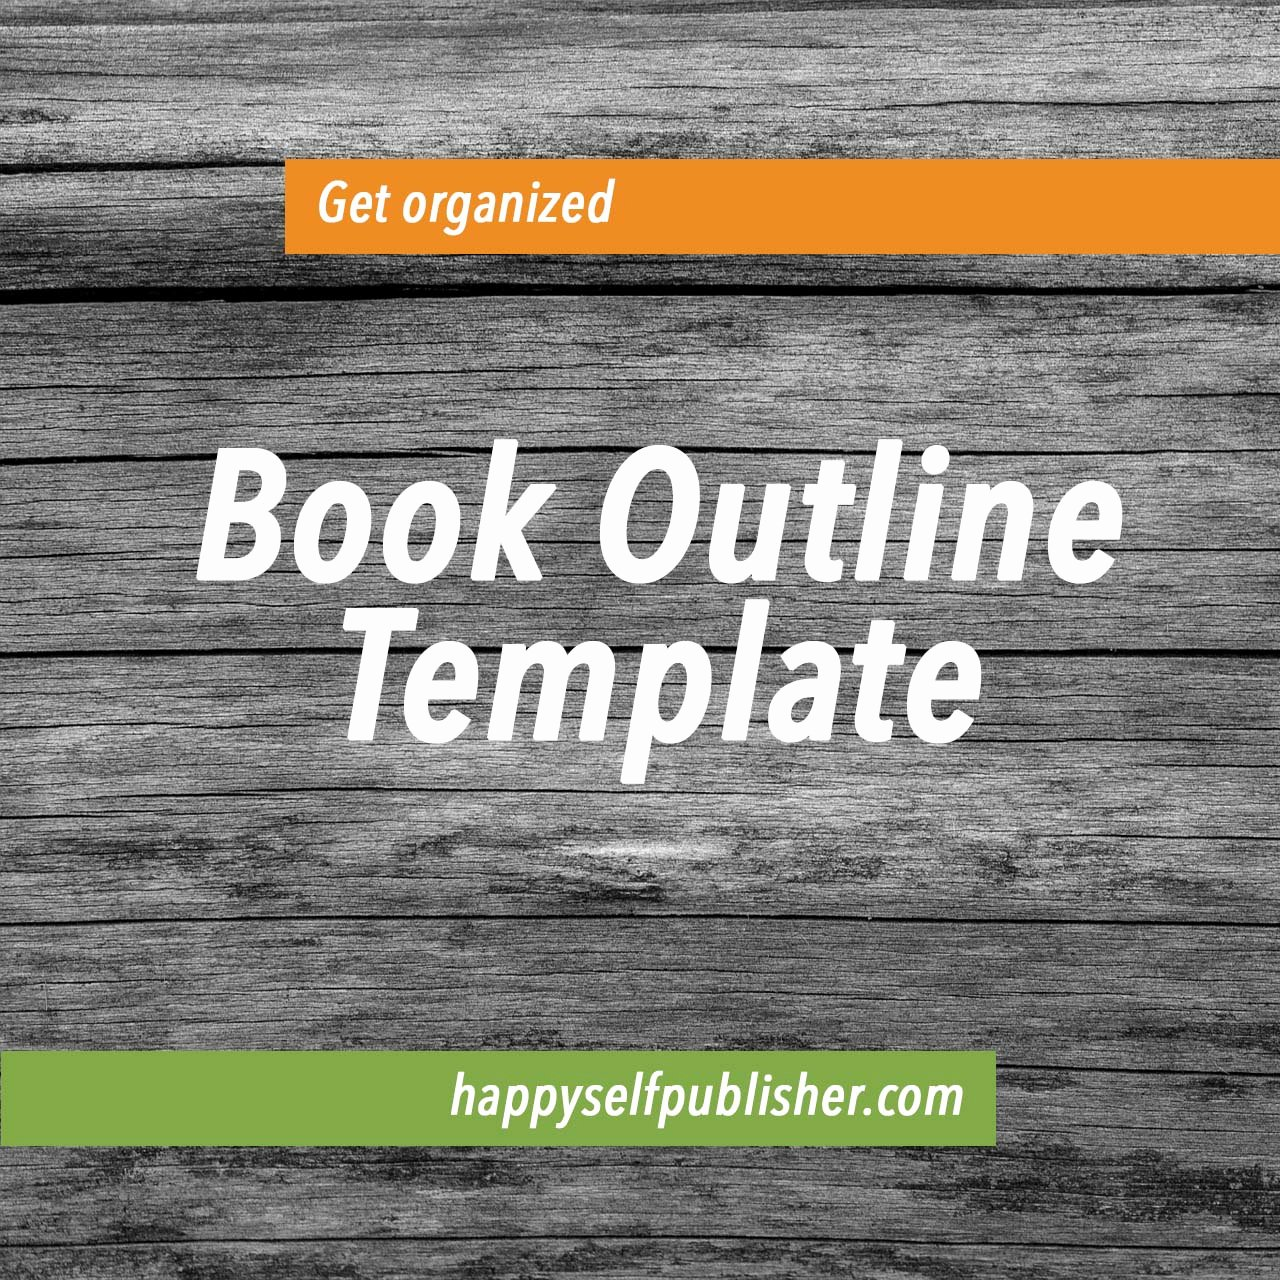 Book Press Release Template Awesome How to Write A Press Release for A Book the Happy Self